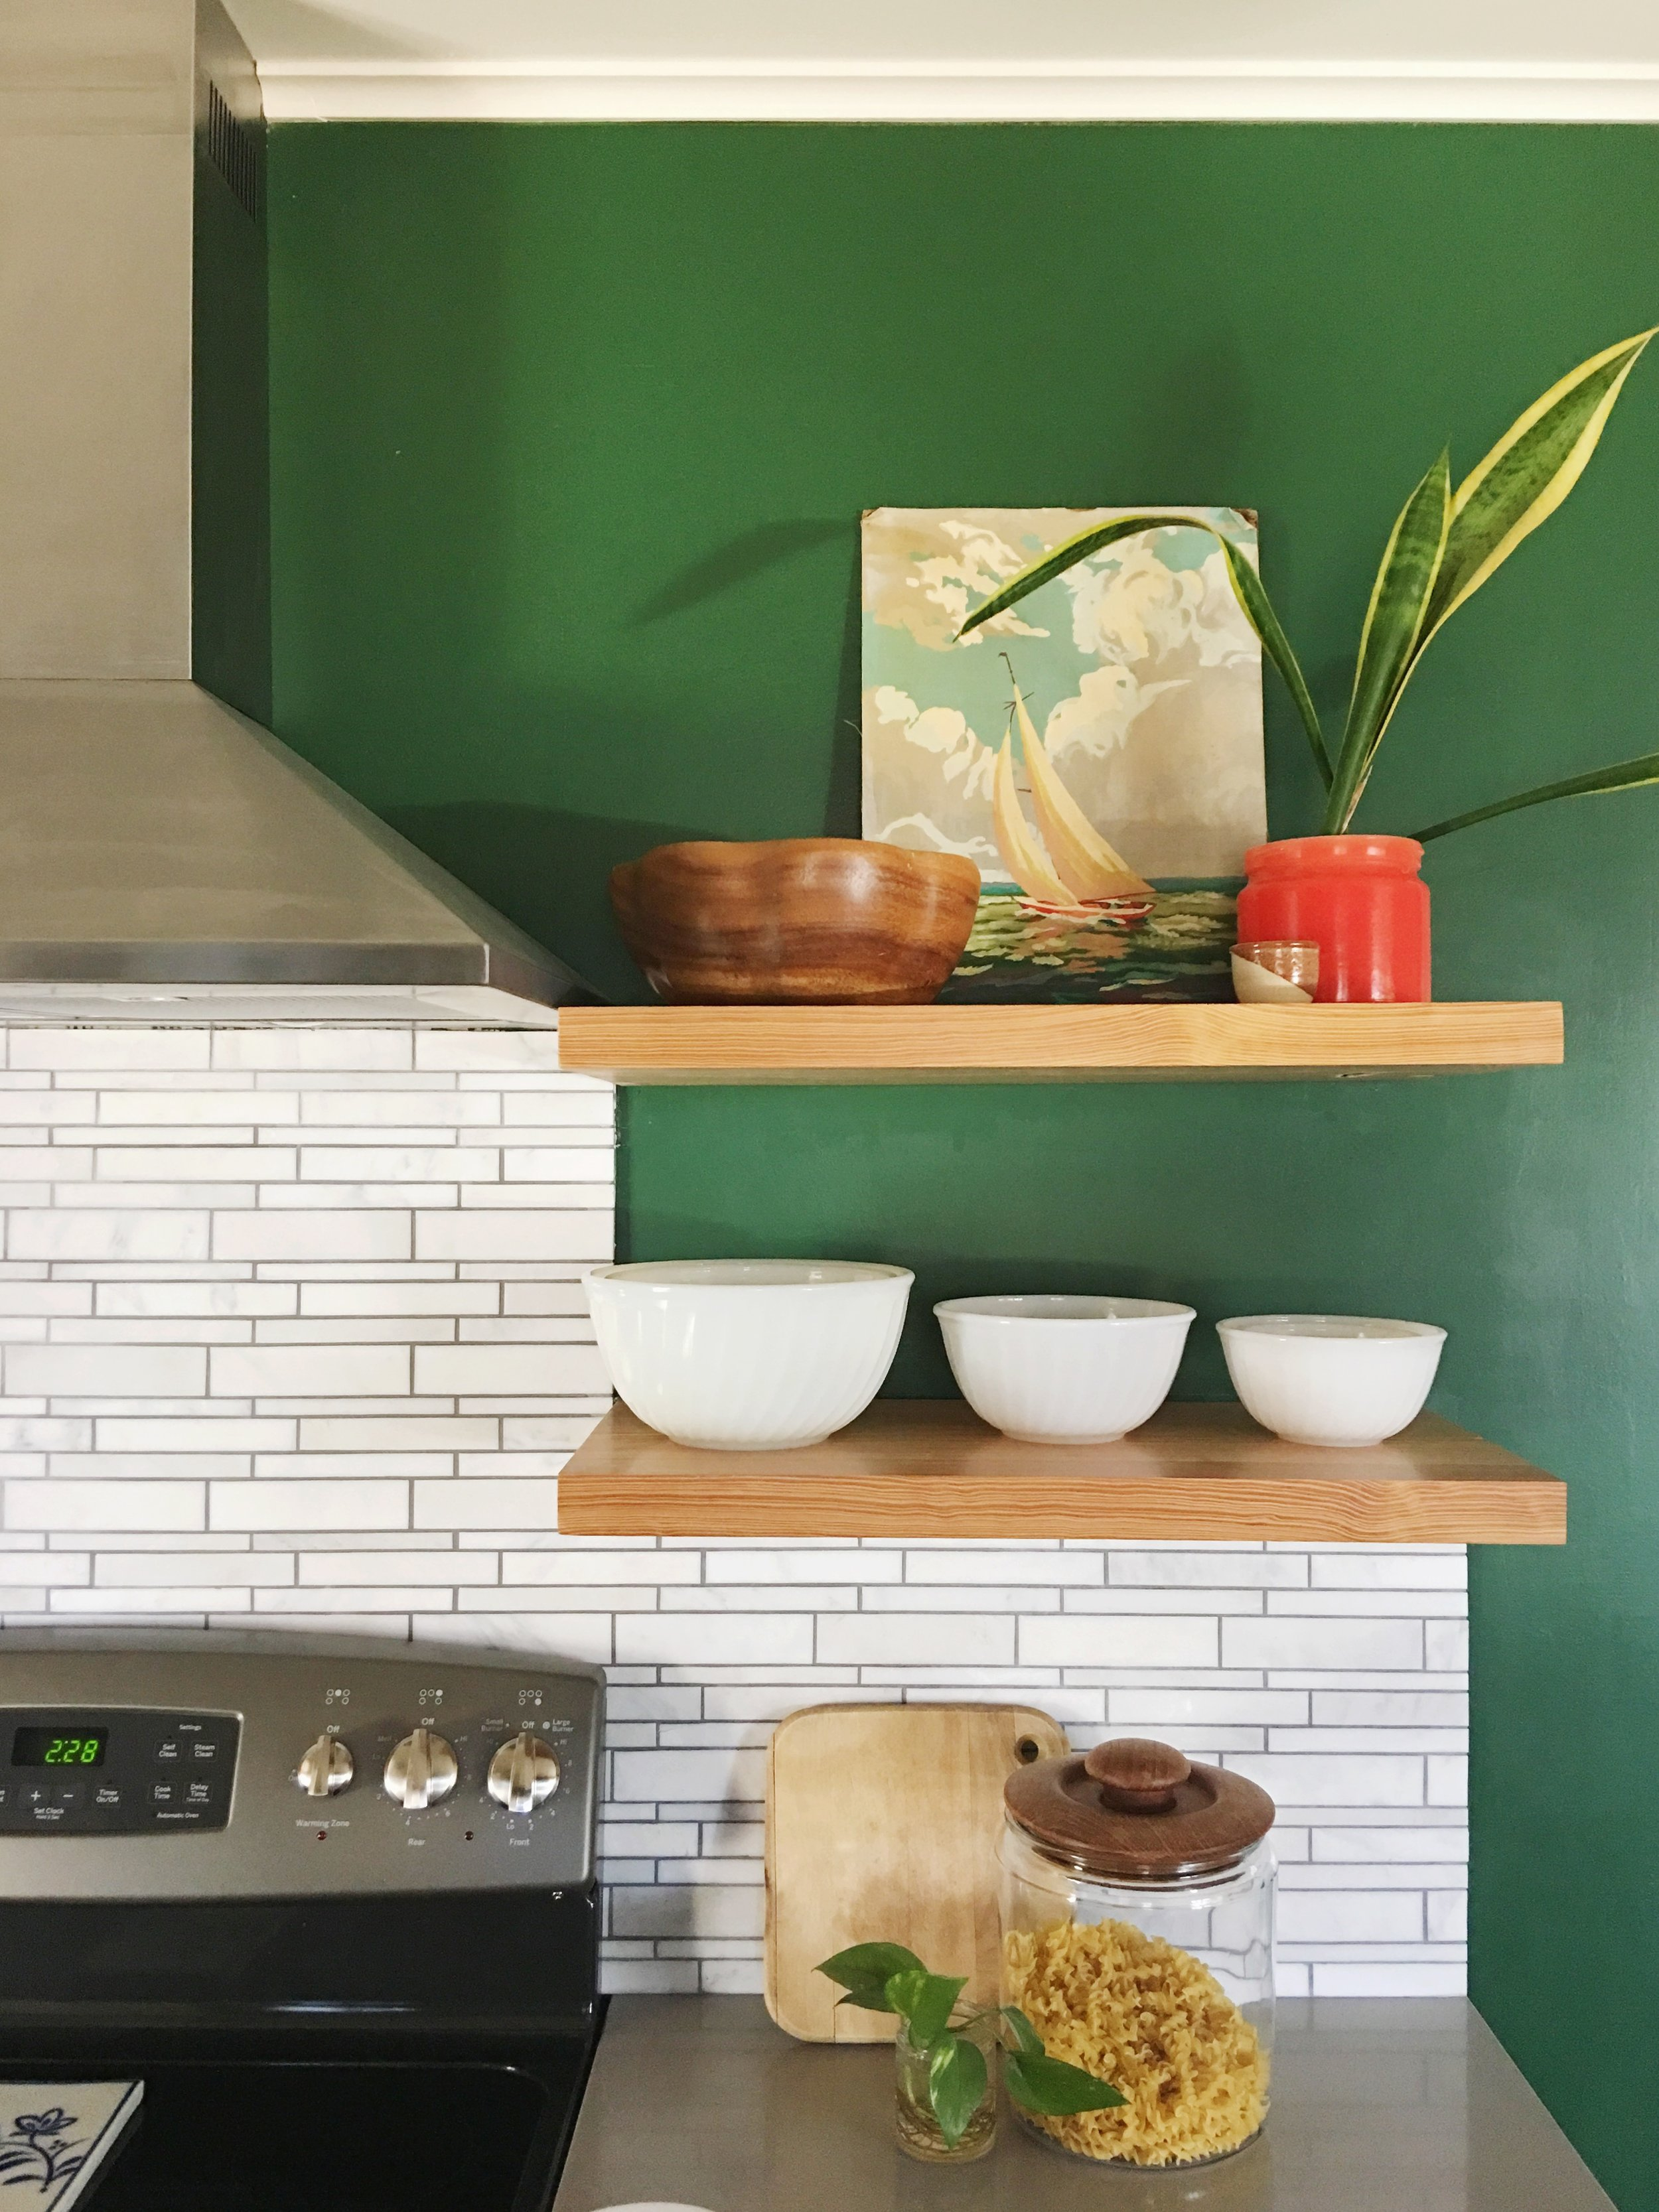 Palmer also added a vintage paint by numbers sailboat to her kitchen shelves this week. Those colors!